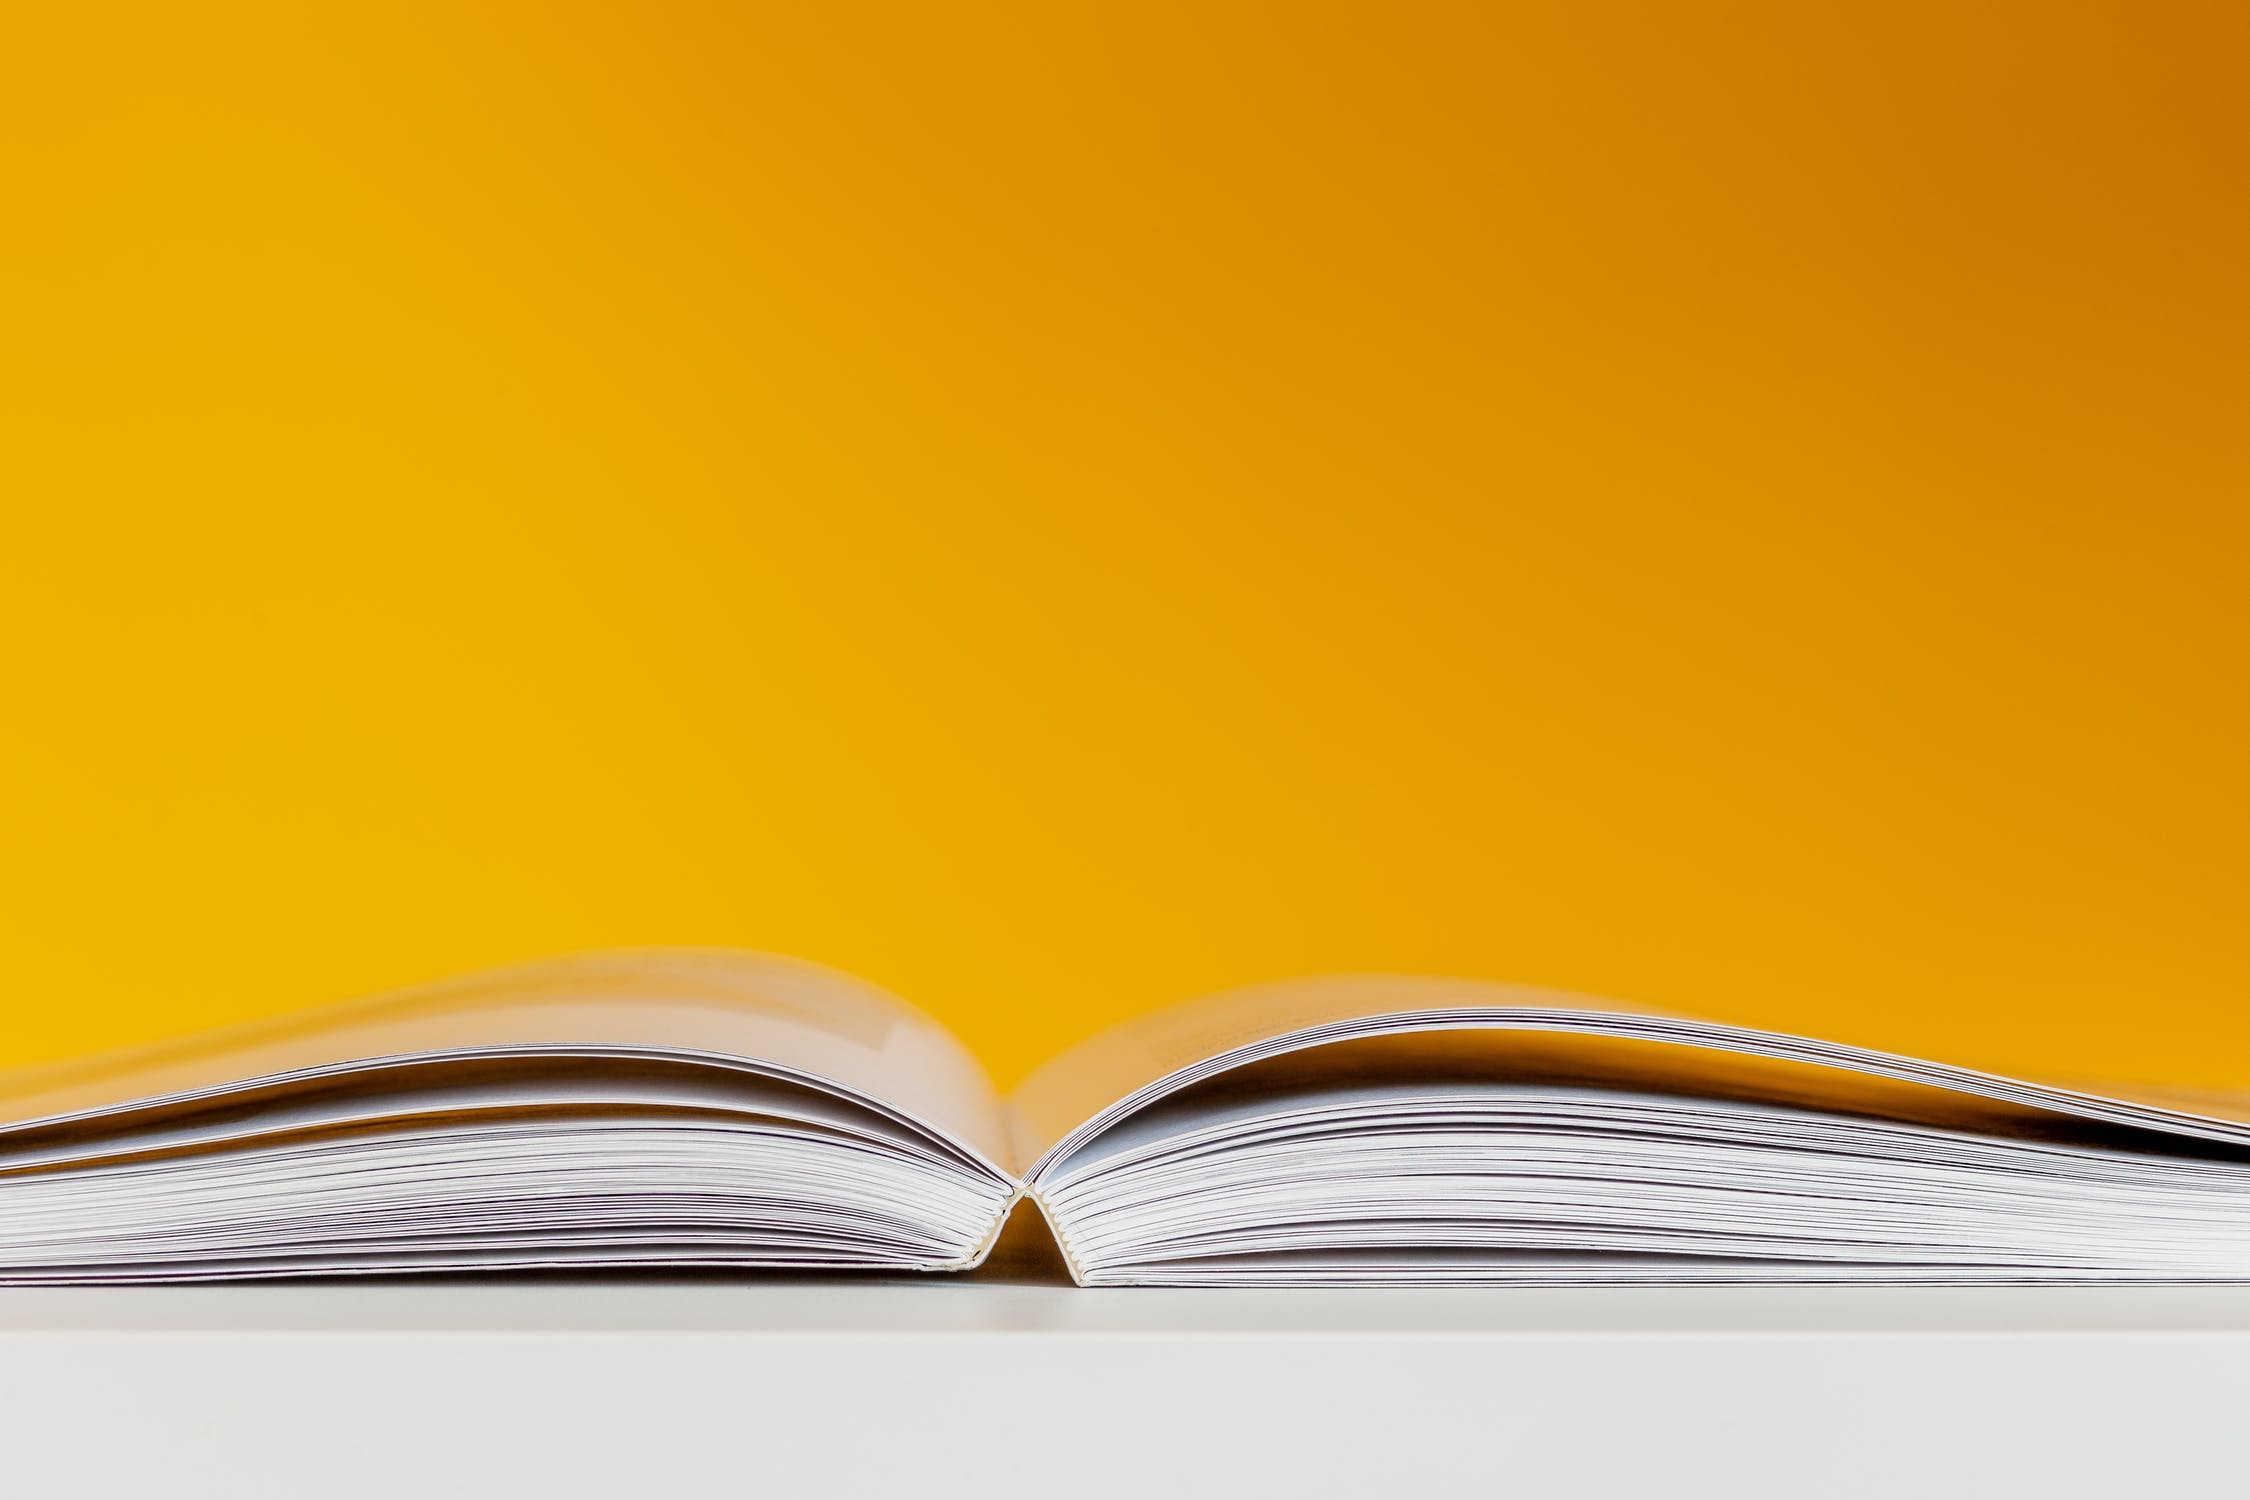 A picture of an open book